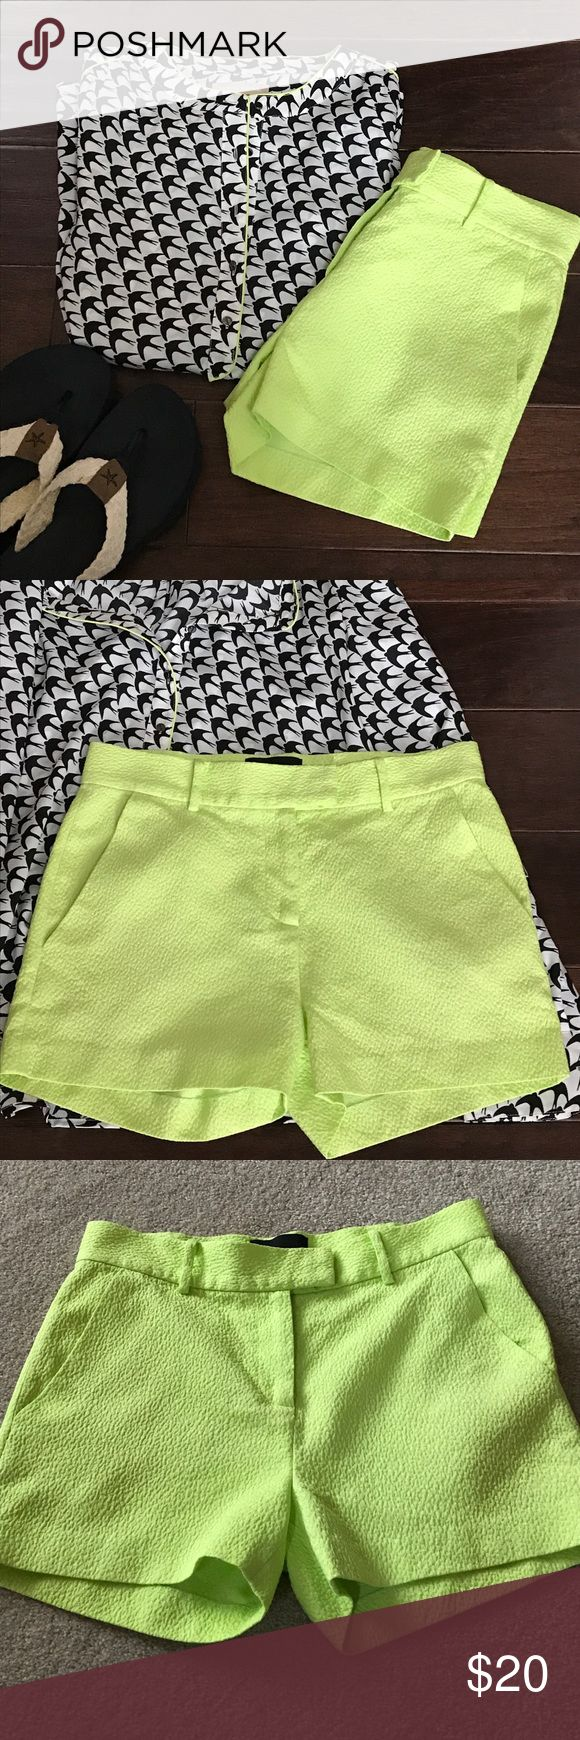 Neon Textured Shorts Adorable and trendy bright green or bright yellow shorts by Cynthia Rowley. Very gently used shorts feature front pockets, double hook and and eye closure, and fun textured pattern. Not lined, but not see-through. Run a bit on the smaller side. From a smoke free and pet free home. {neon green, neon yellow, spring, summer, texture, highlighter, EUC, excellent used condition} Cynthia Rowley Shorts